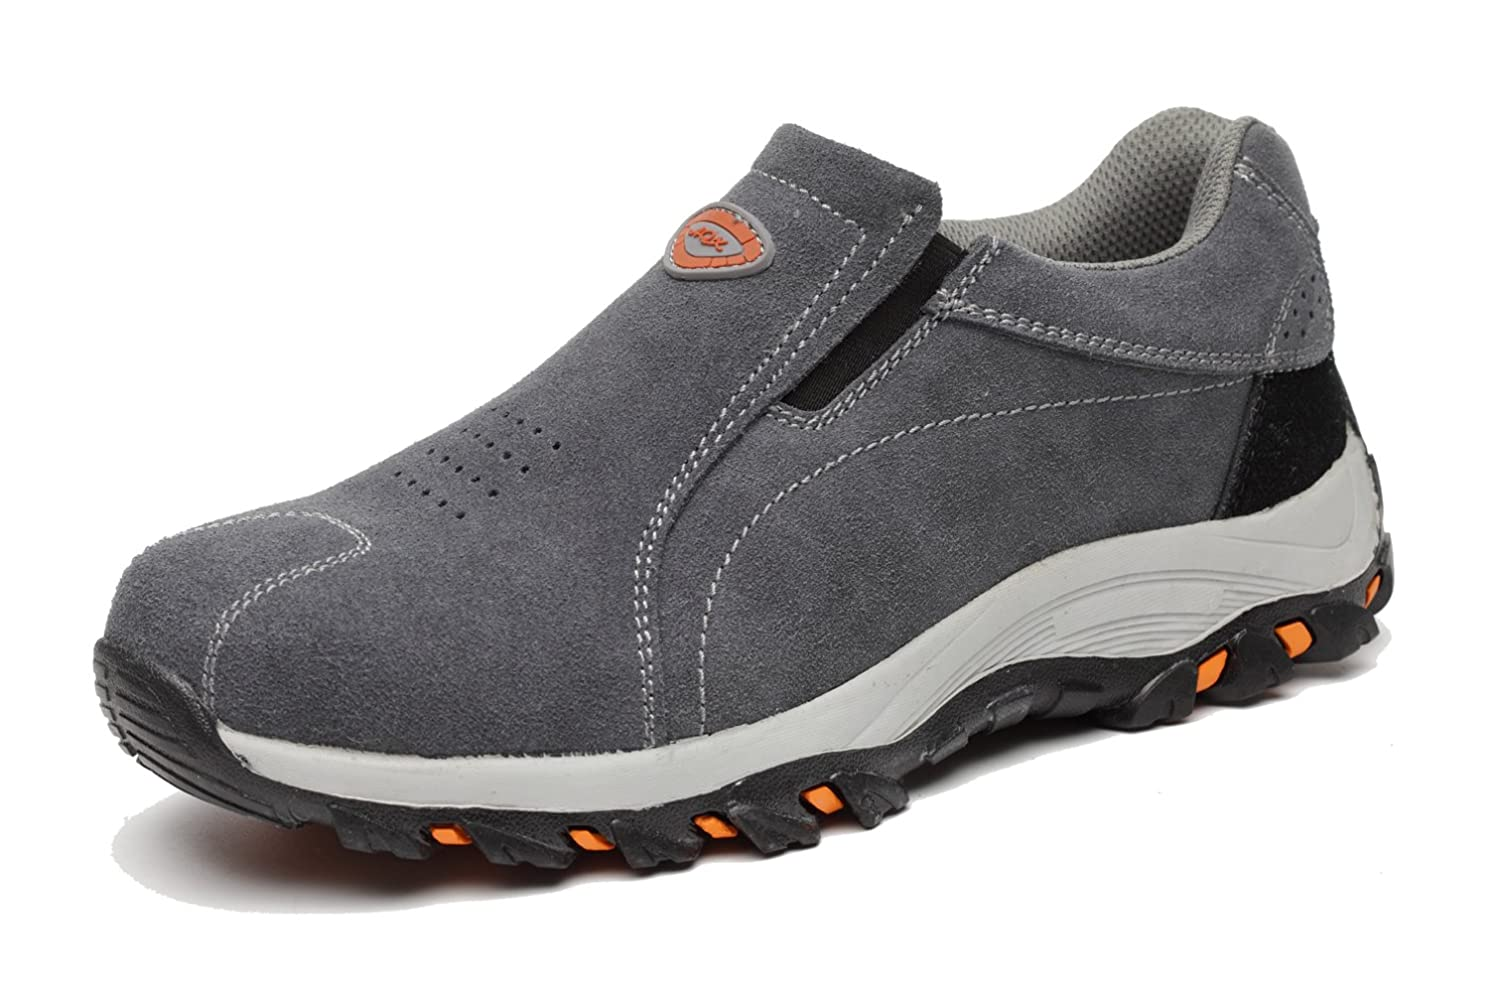 fed62f5f68f2b Mens Safety Shoes Steel Toe Cap Safety Trainers Leather Slip On Work Shoes  Steel Sole Protection Hiking Trainers